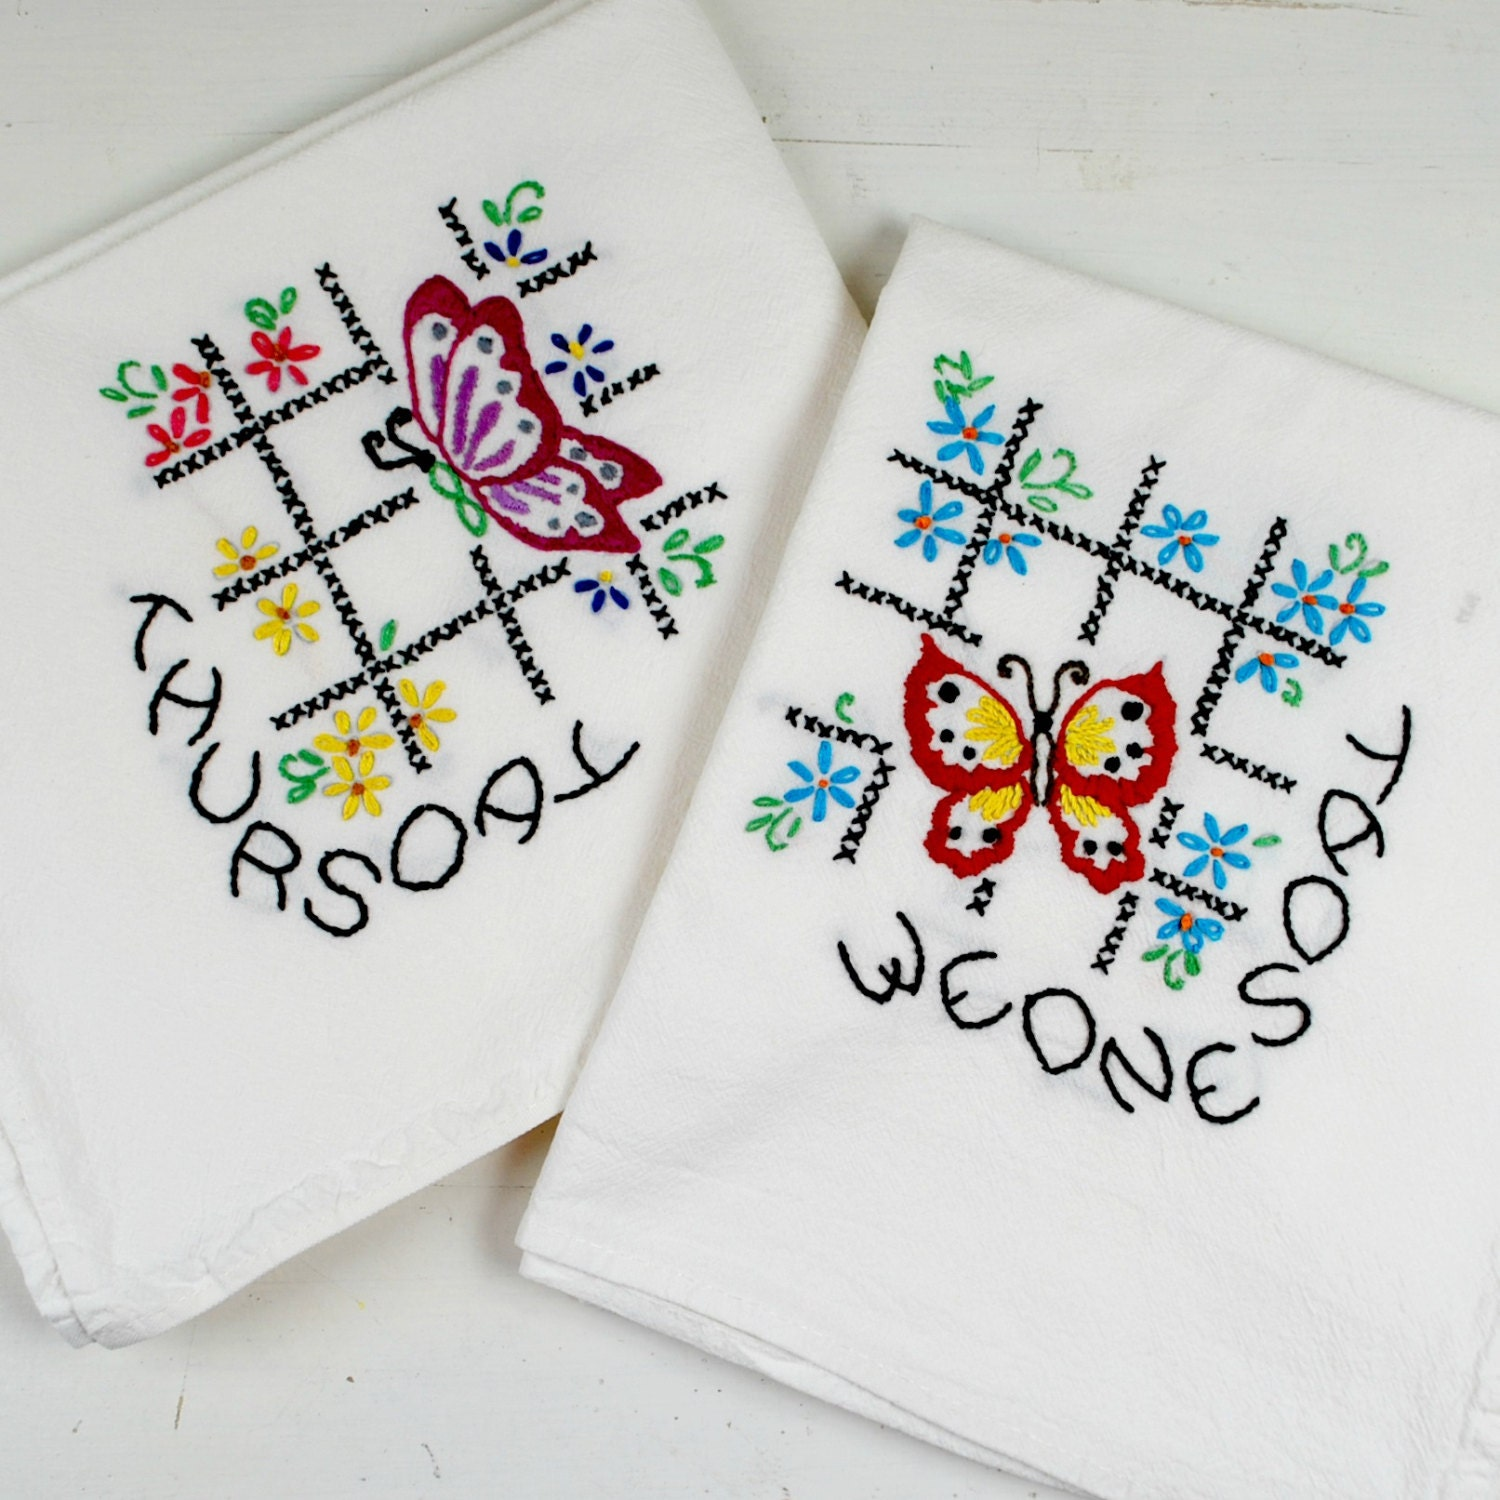 Embroidered Towels Custom: Days Of The Week Dish Towel Embroidered Towels Hand